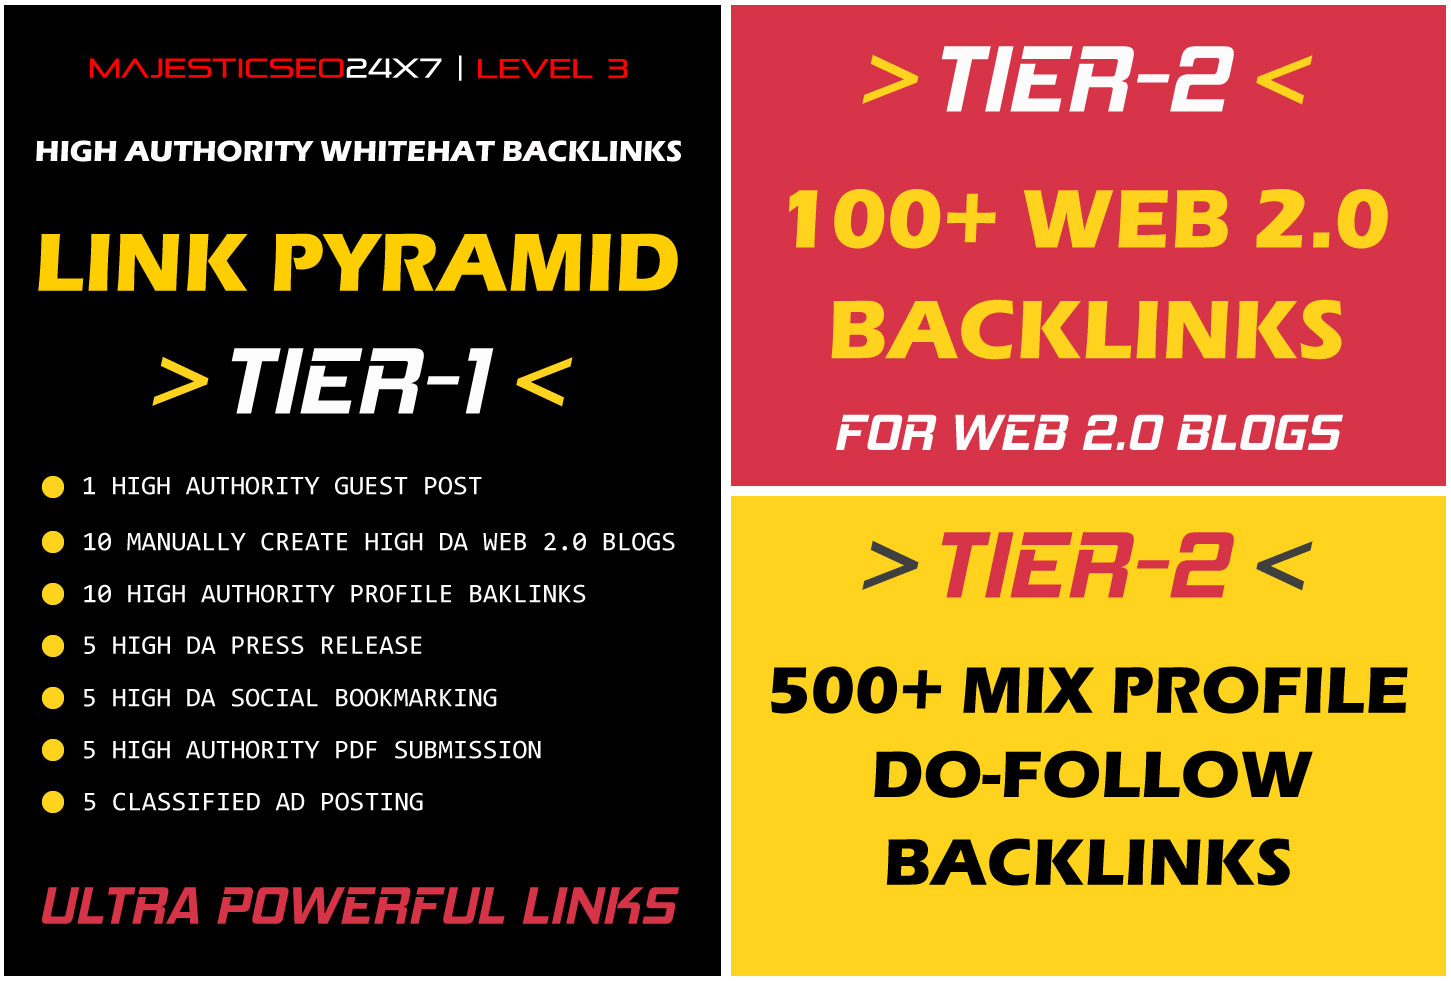 ULTRA POWERFUL 3 TIER LINK PYRAMID FOR SKYROCKET YOUR WEBSITE RANKING